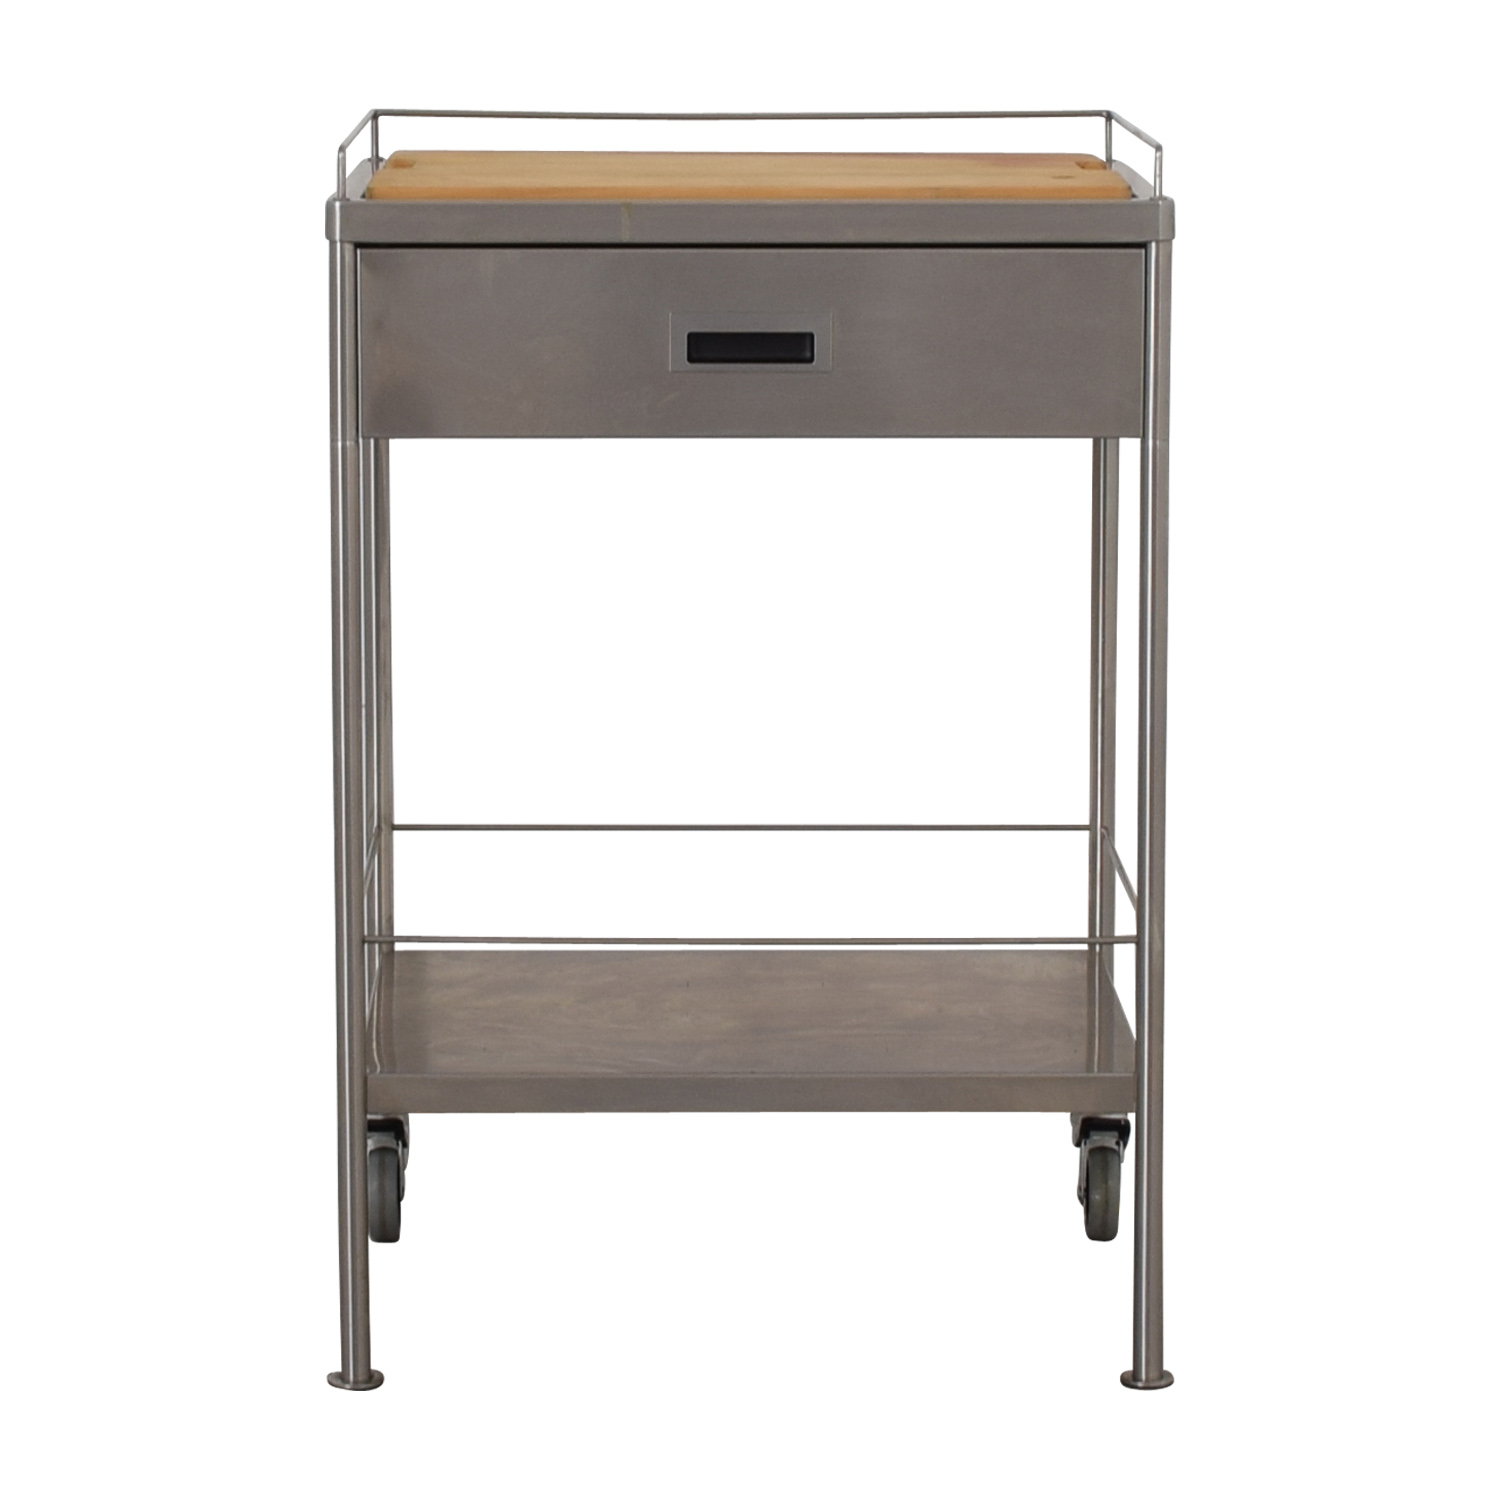 Metal Chef's Single Drawer Table Cart with Cutting Board Tables